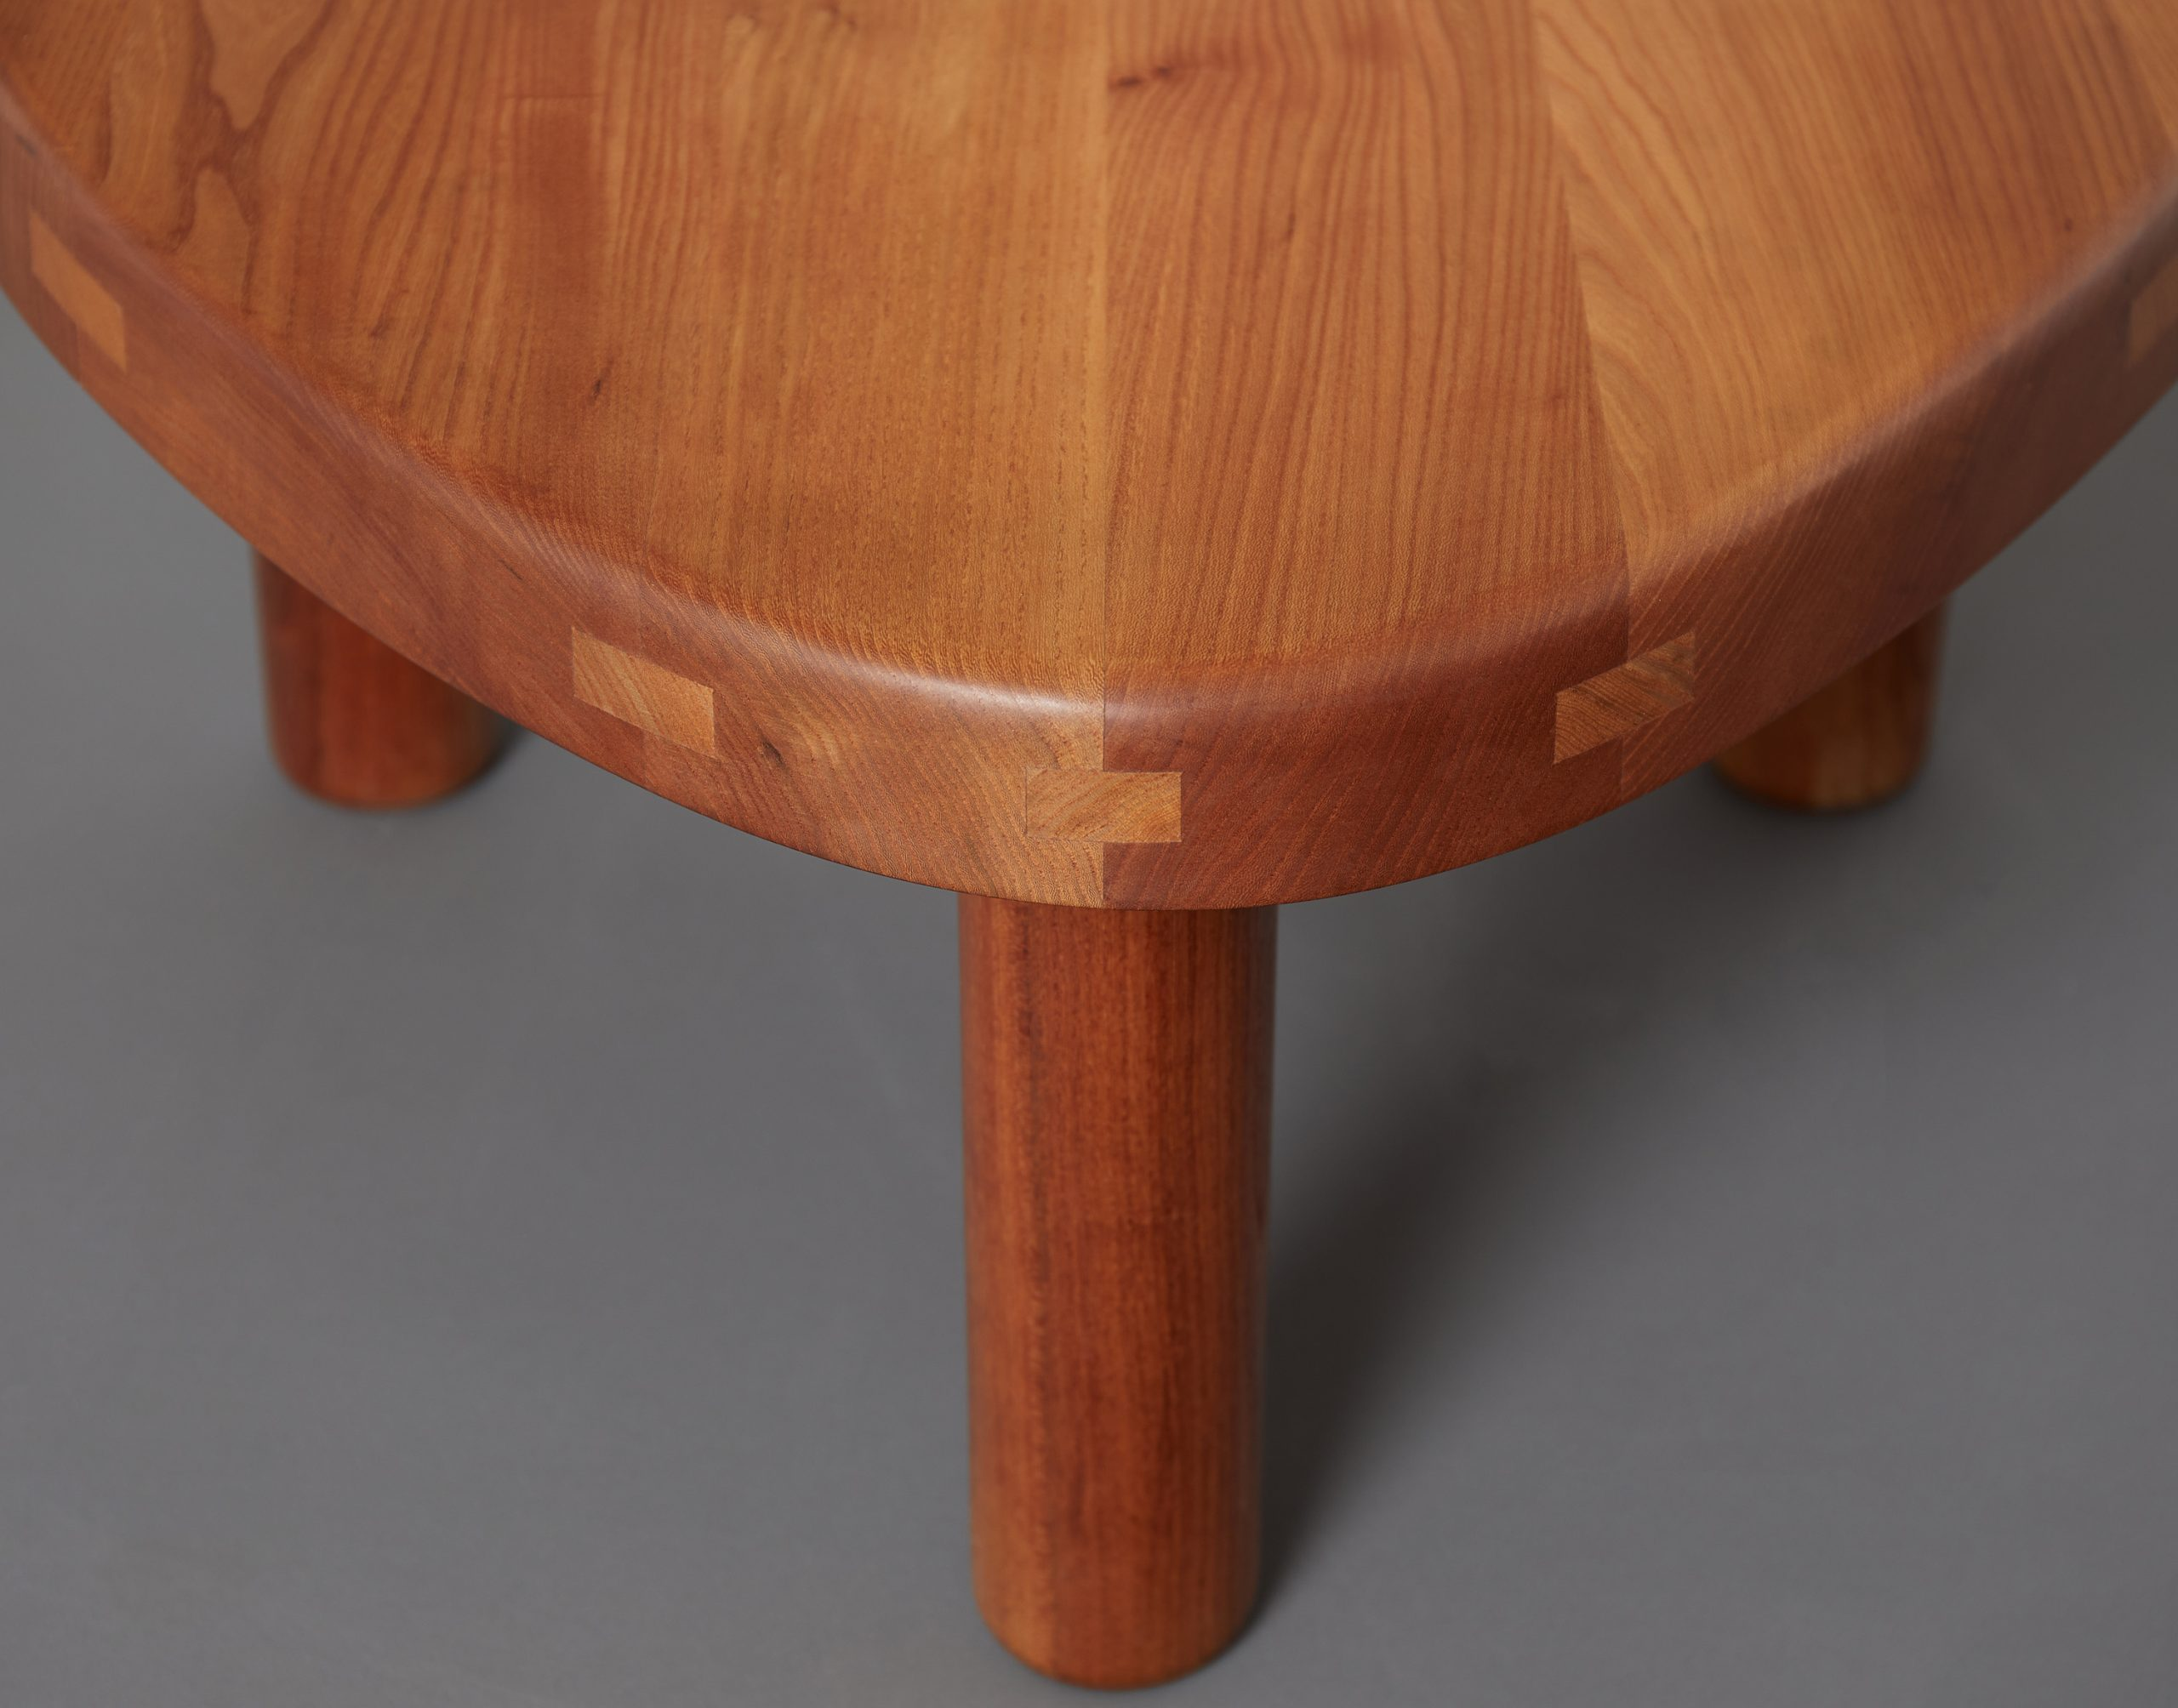 t23-table-by-pierre-chapo-image-01